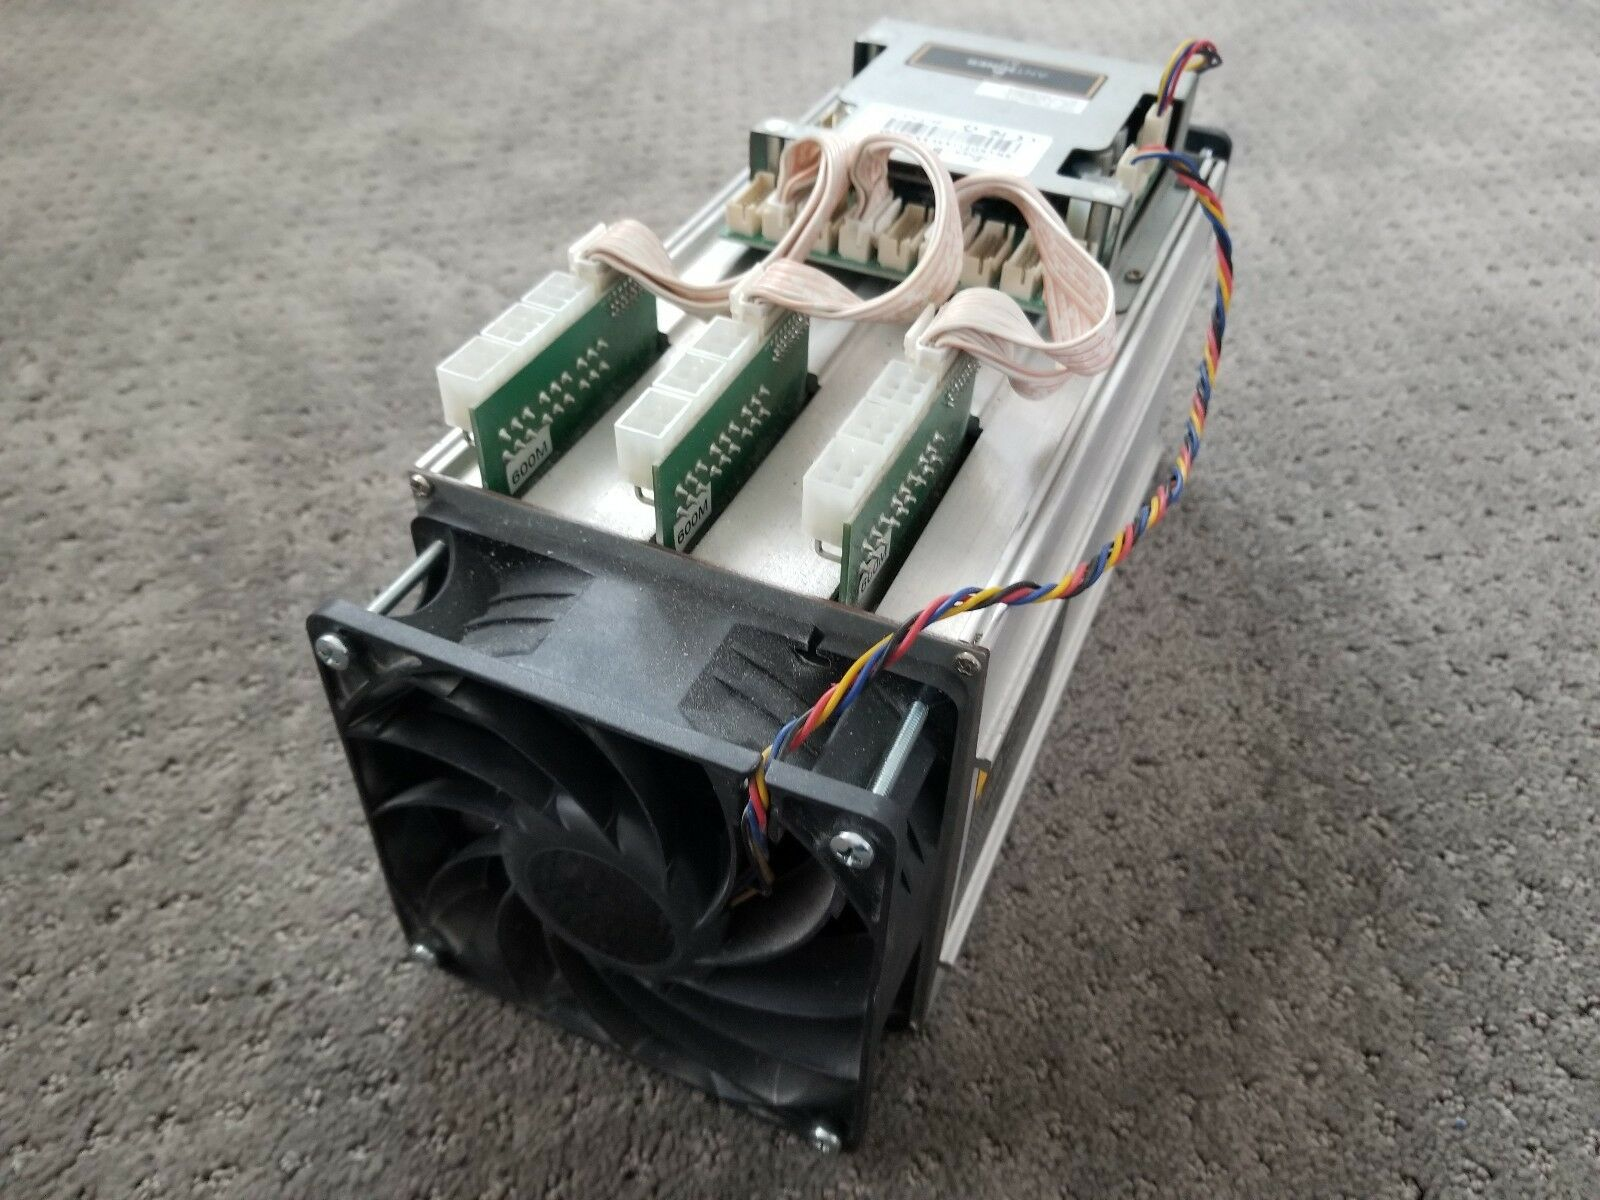 USED Bitmain AntMiner S7 ASIC BitCoin Miner 4 73TH/s + (2